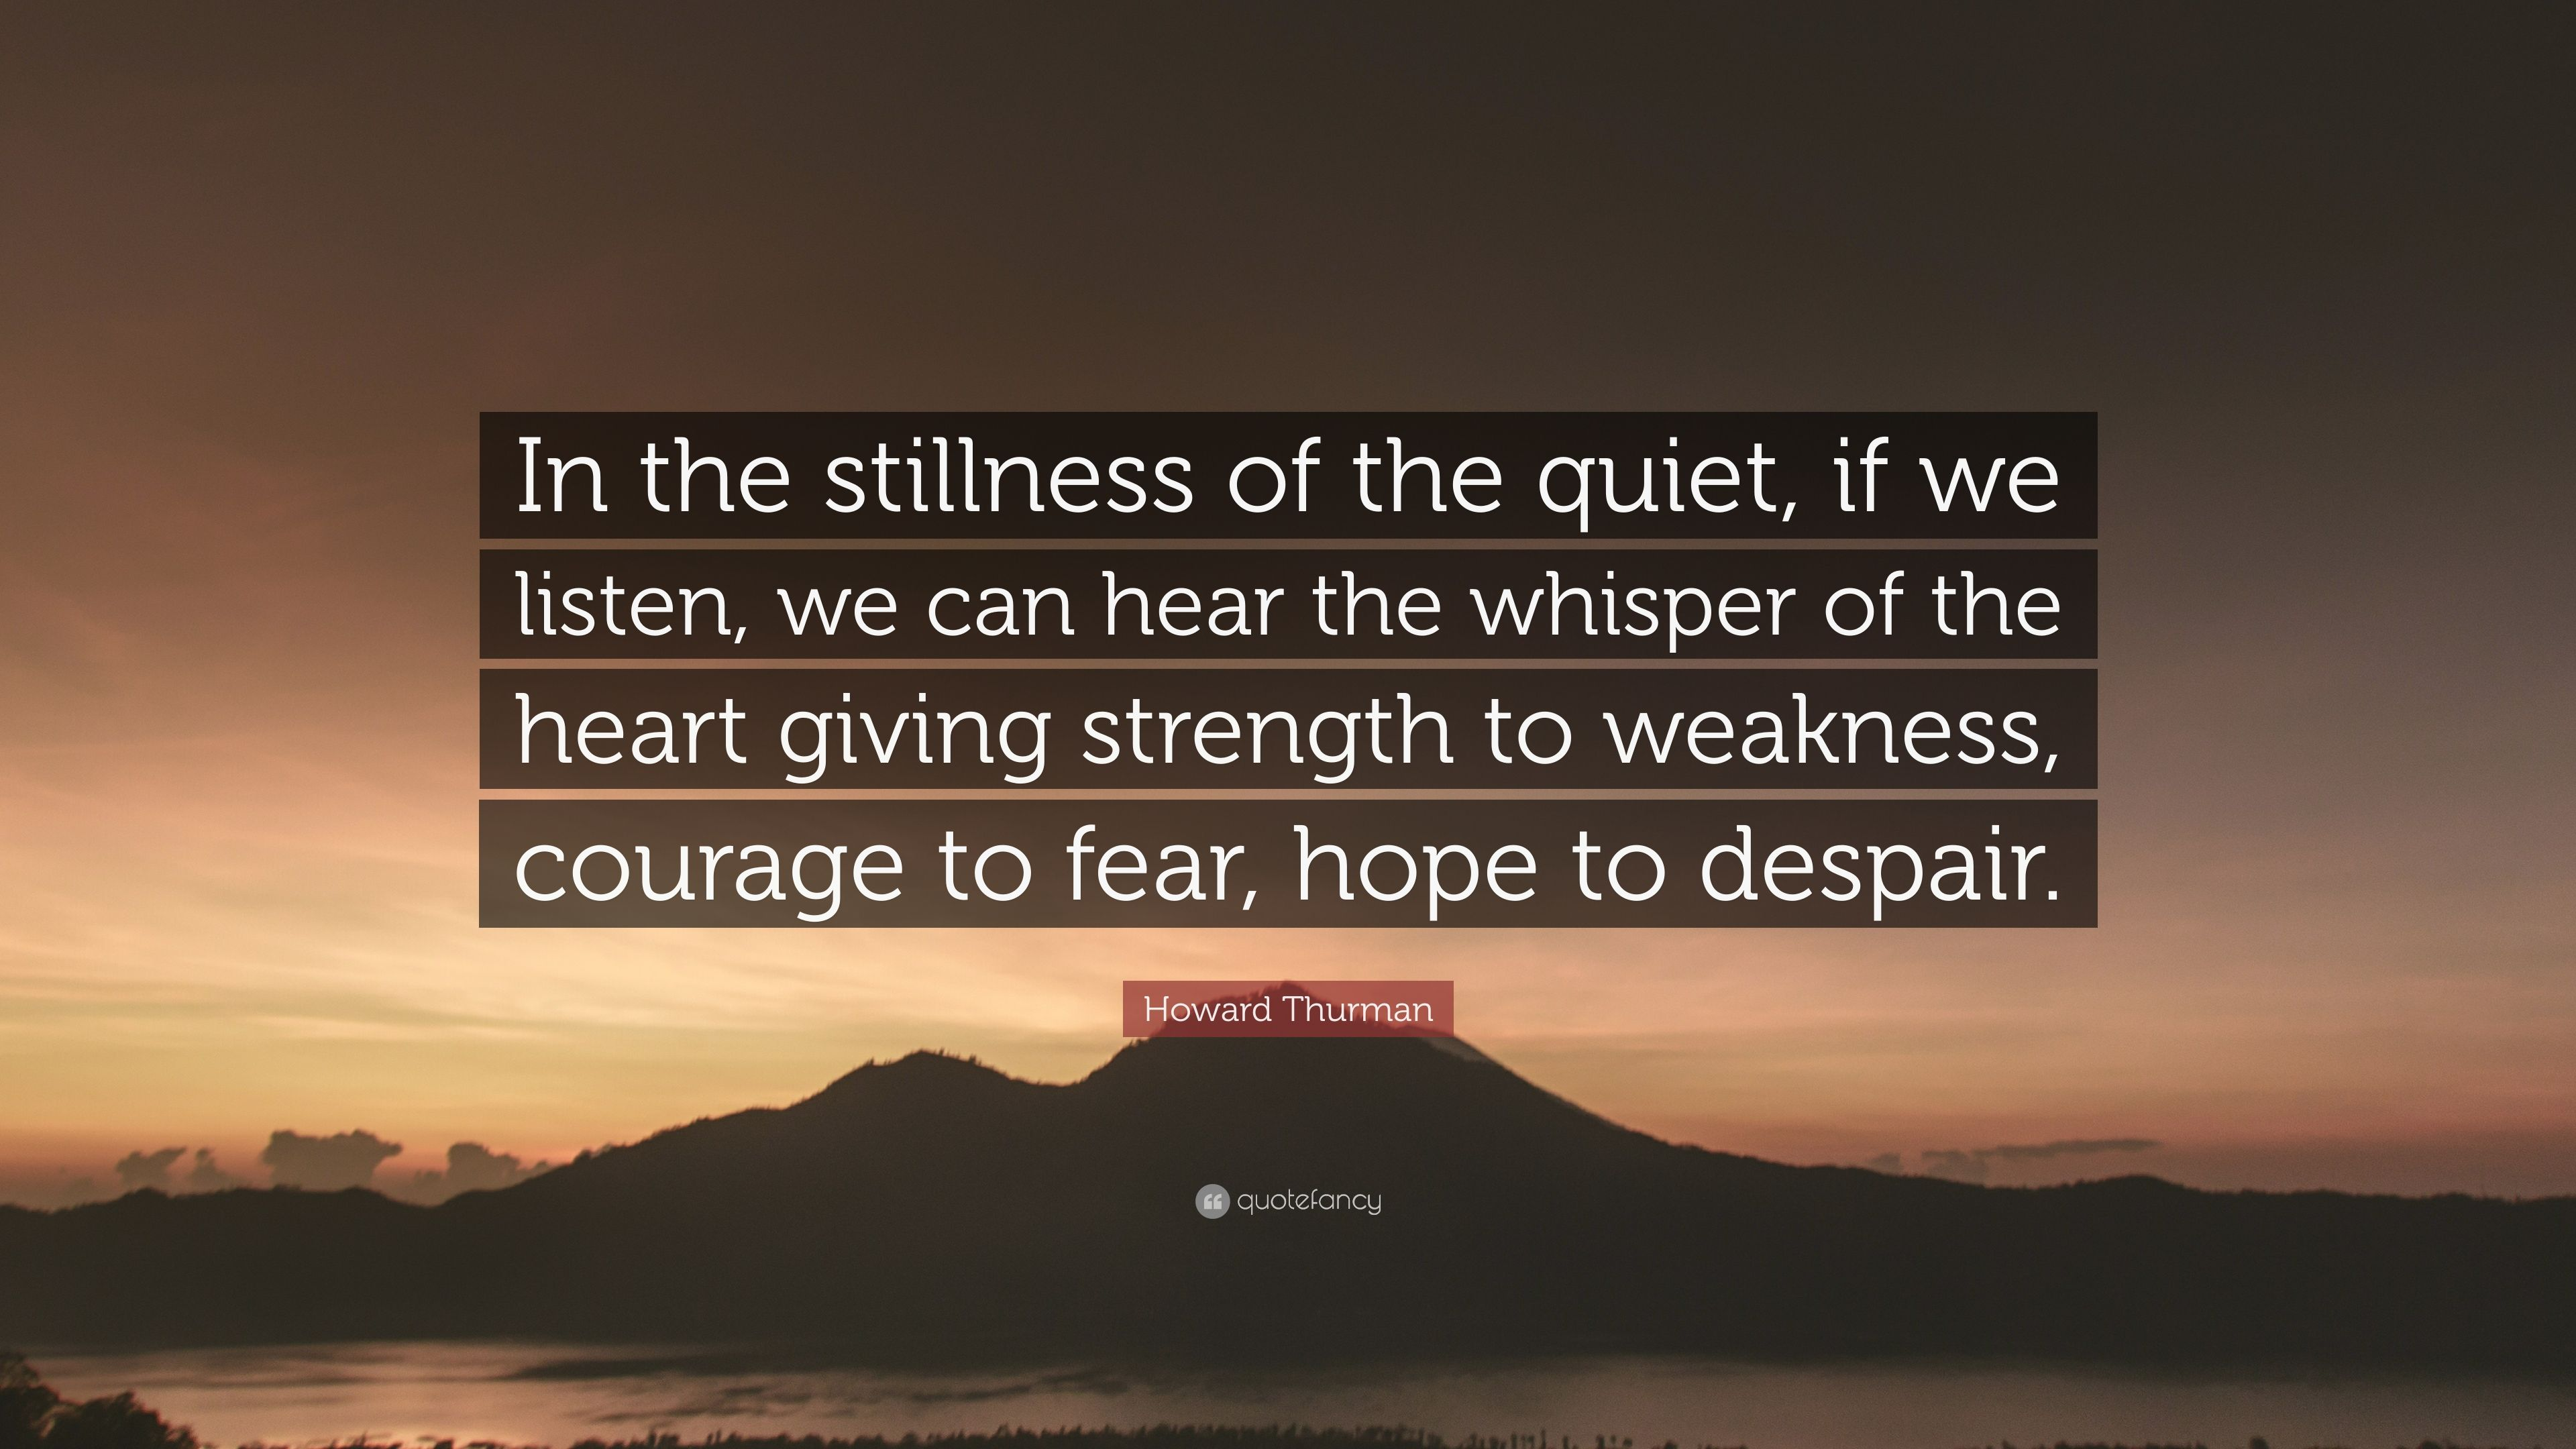 Howard Thurman Quote In The Stillness Of The Quiet If We Listen